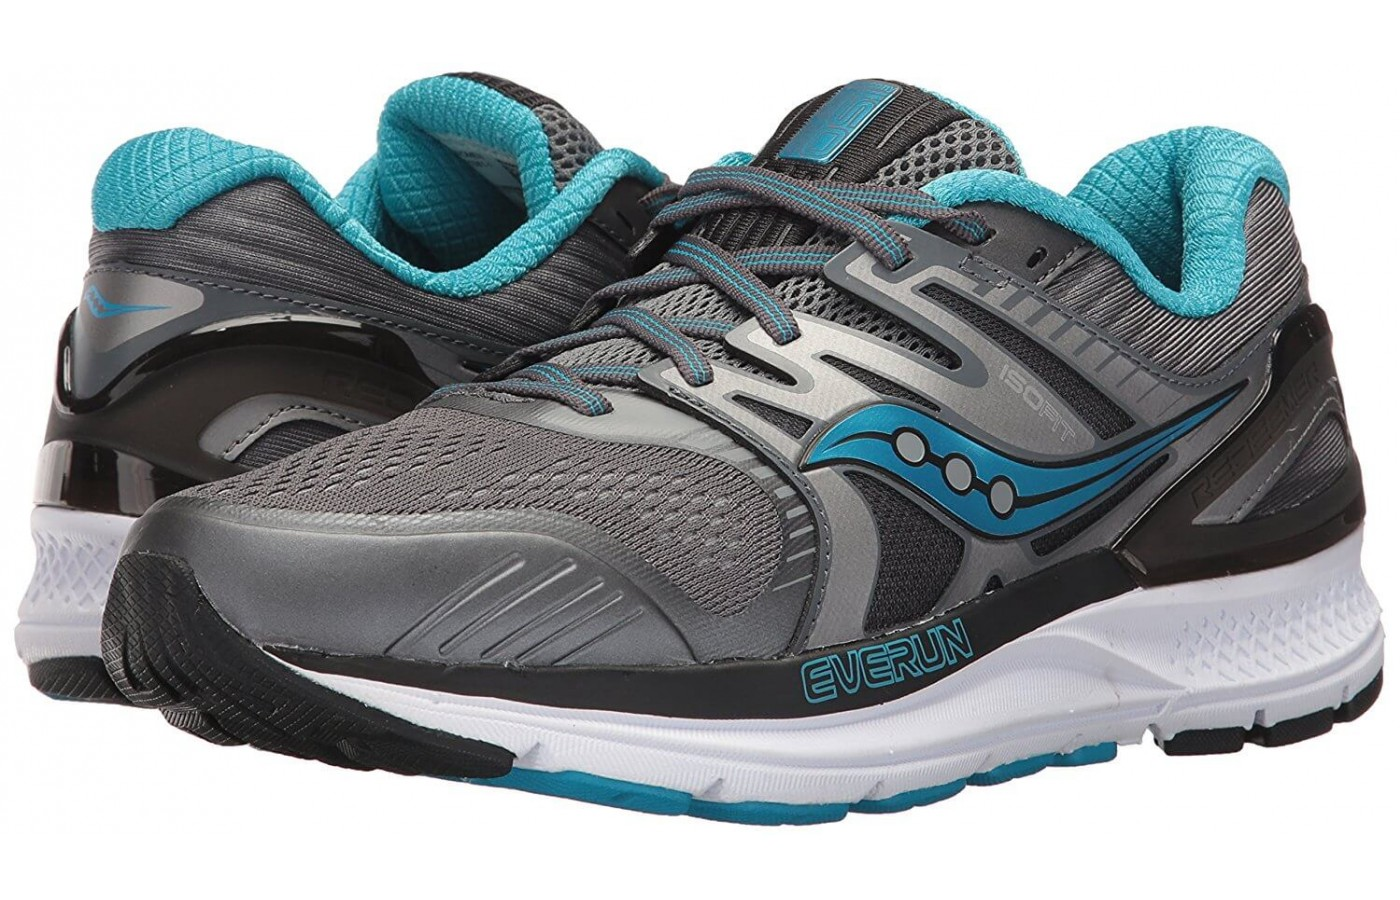 The Saucony Redeemer ISO 2 is a highly cushioned high stability shoe